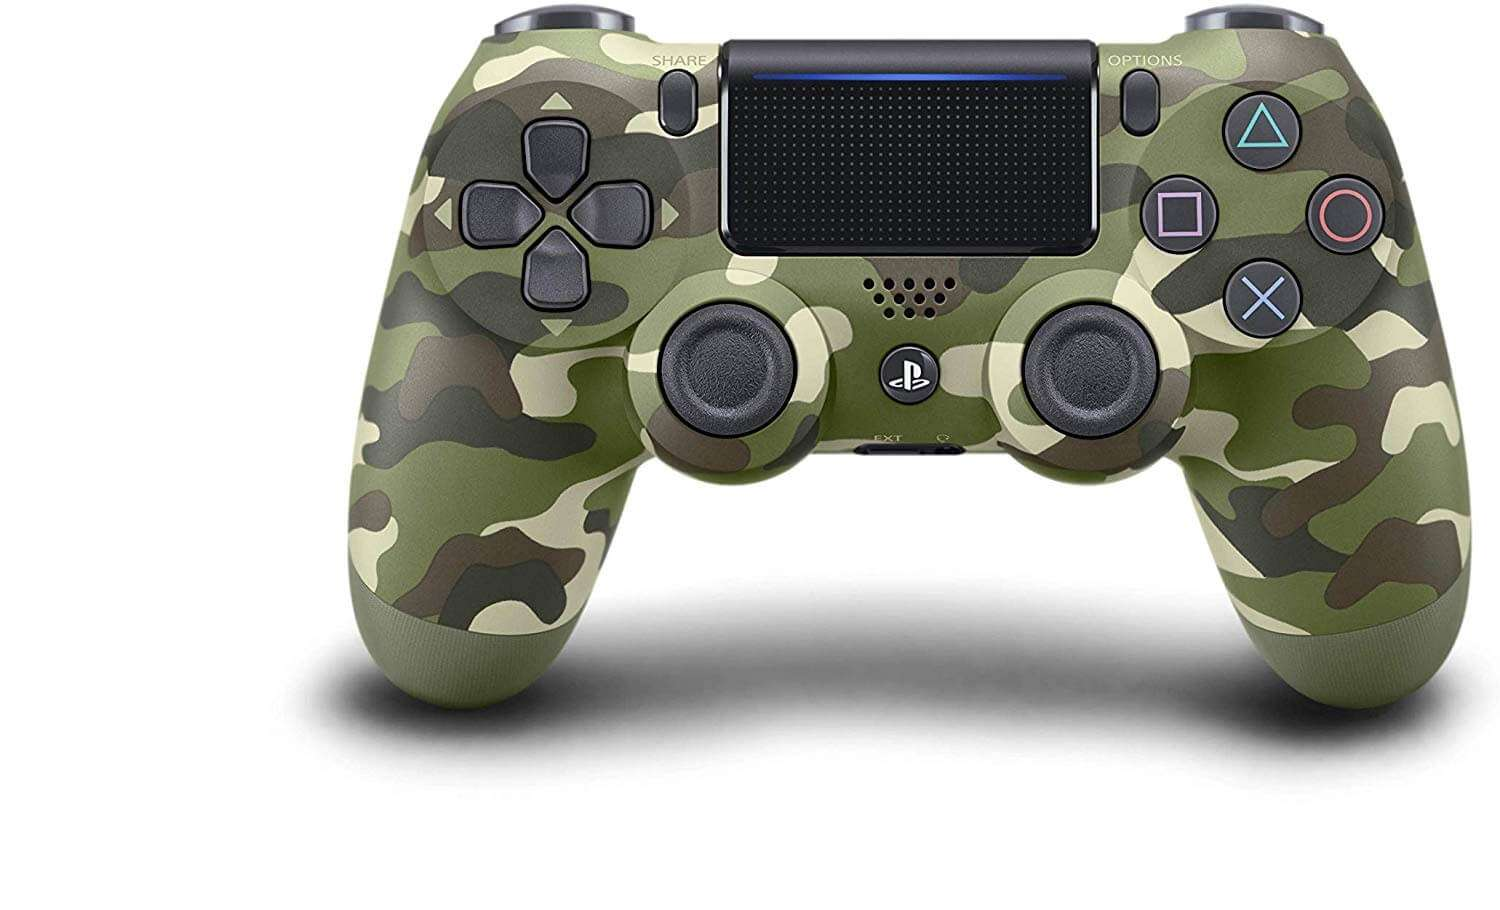 Sony DualShock 4 Wireless Controller For PlayStation 4 - Army Green